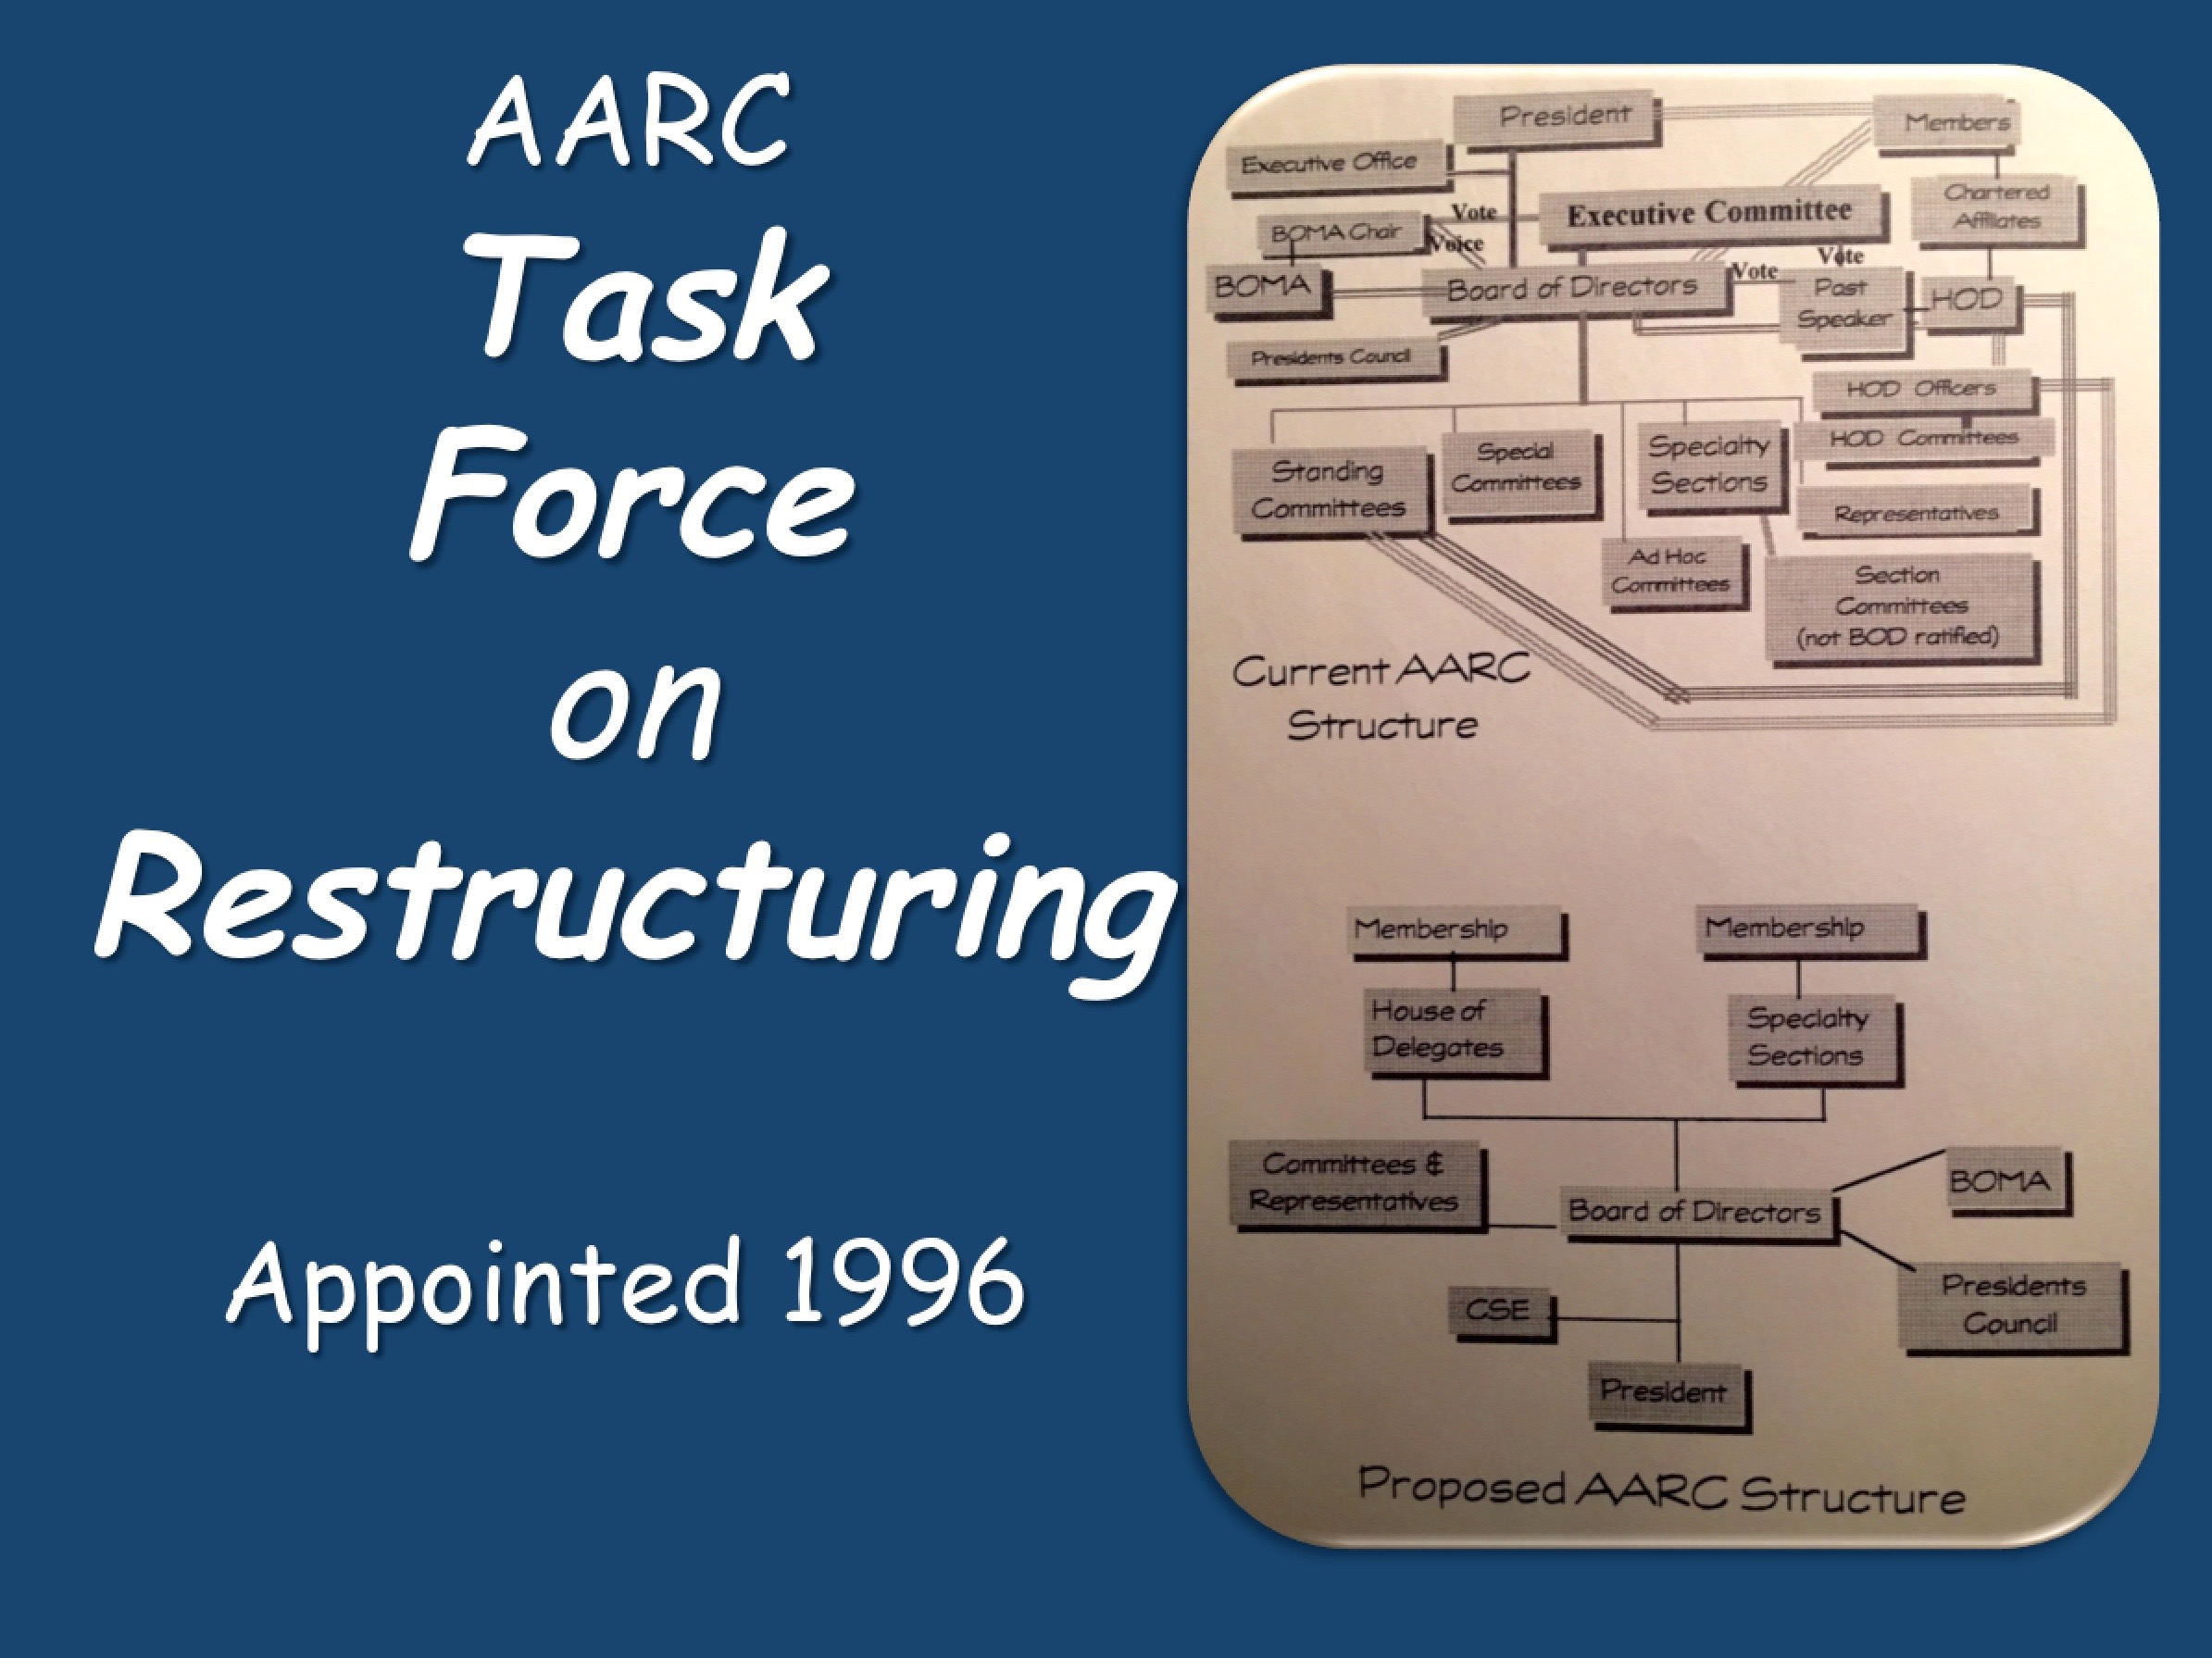 1996 Task Force on Restructuring Appointed